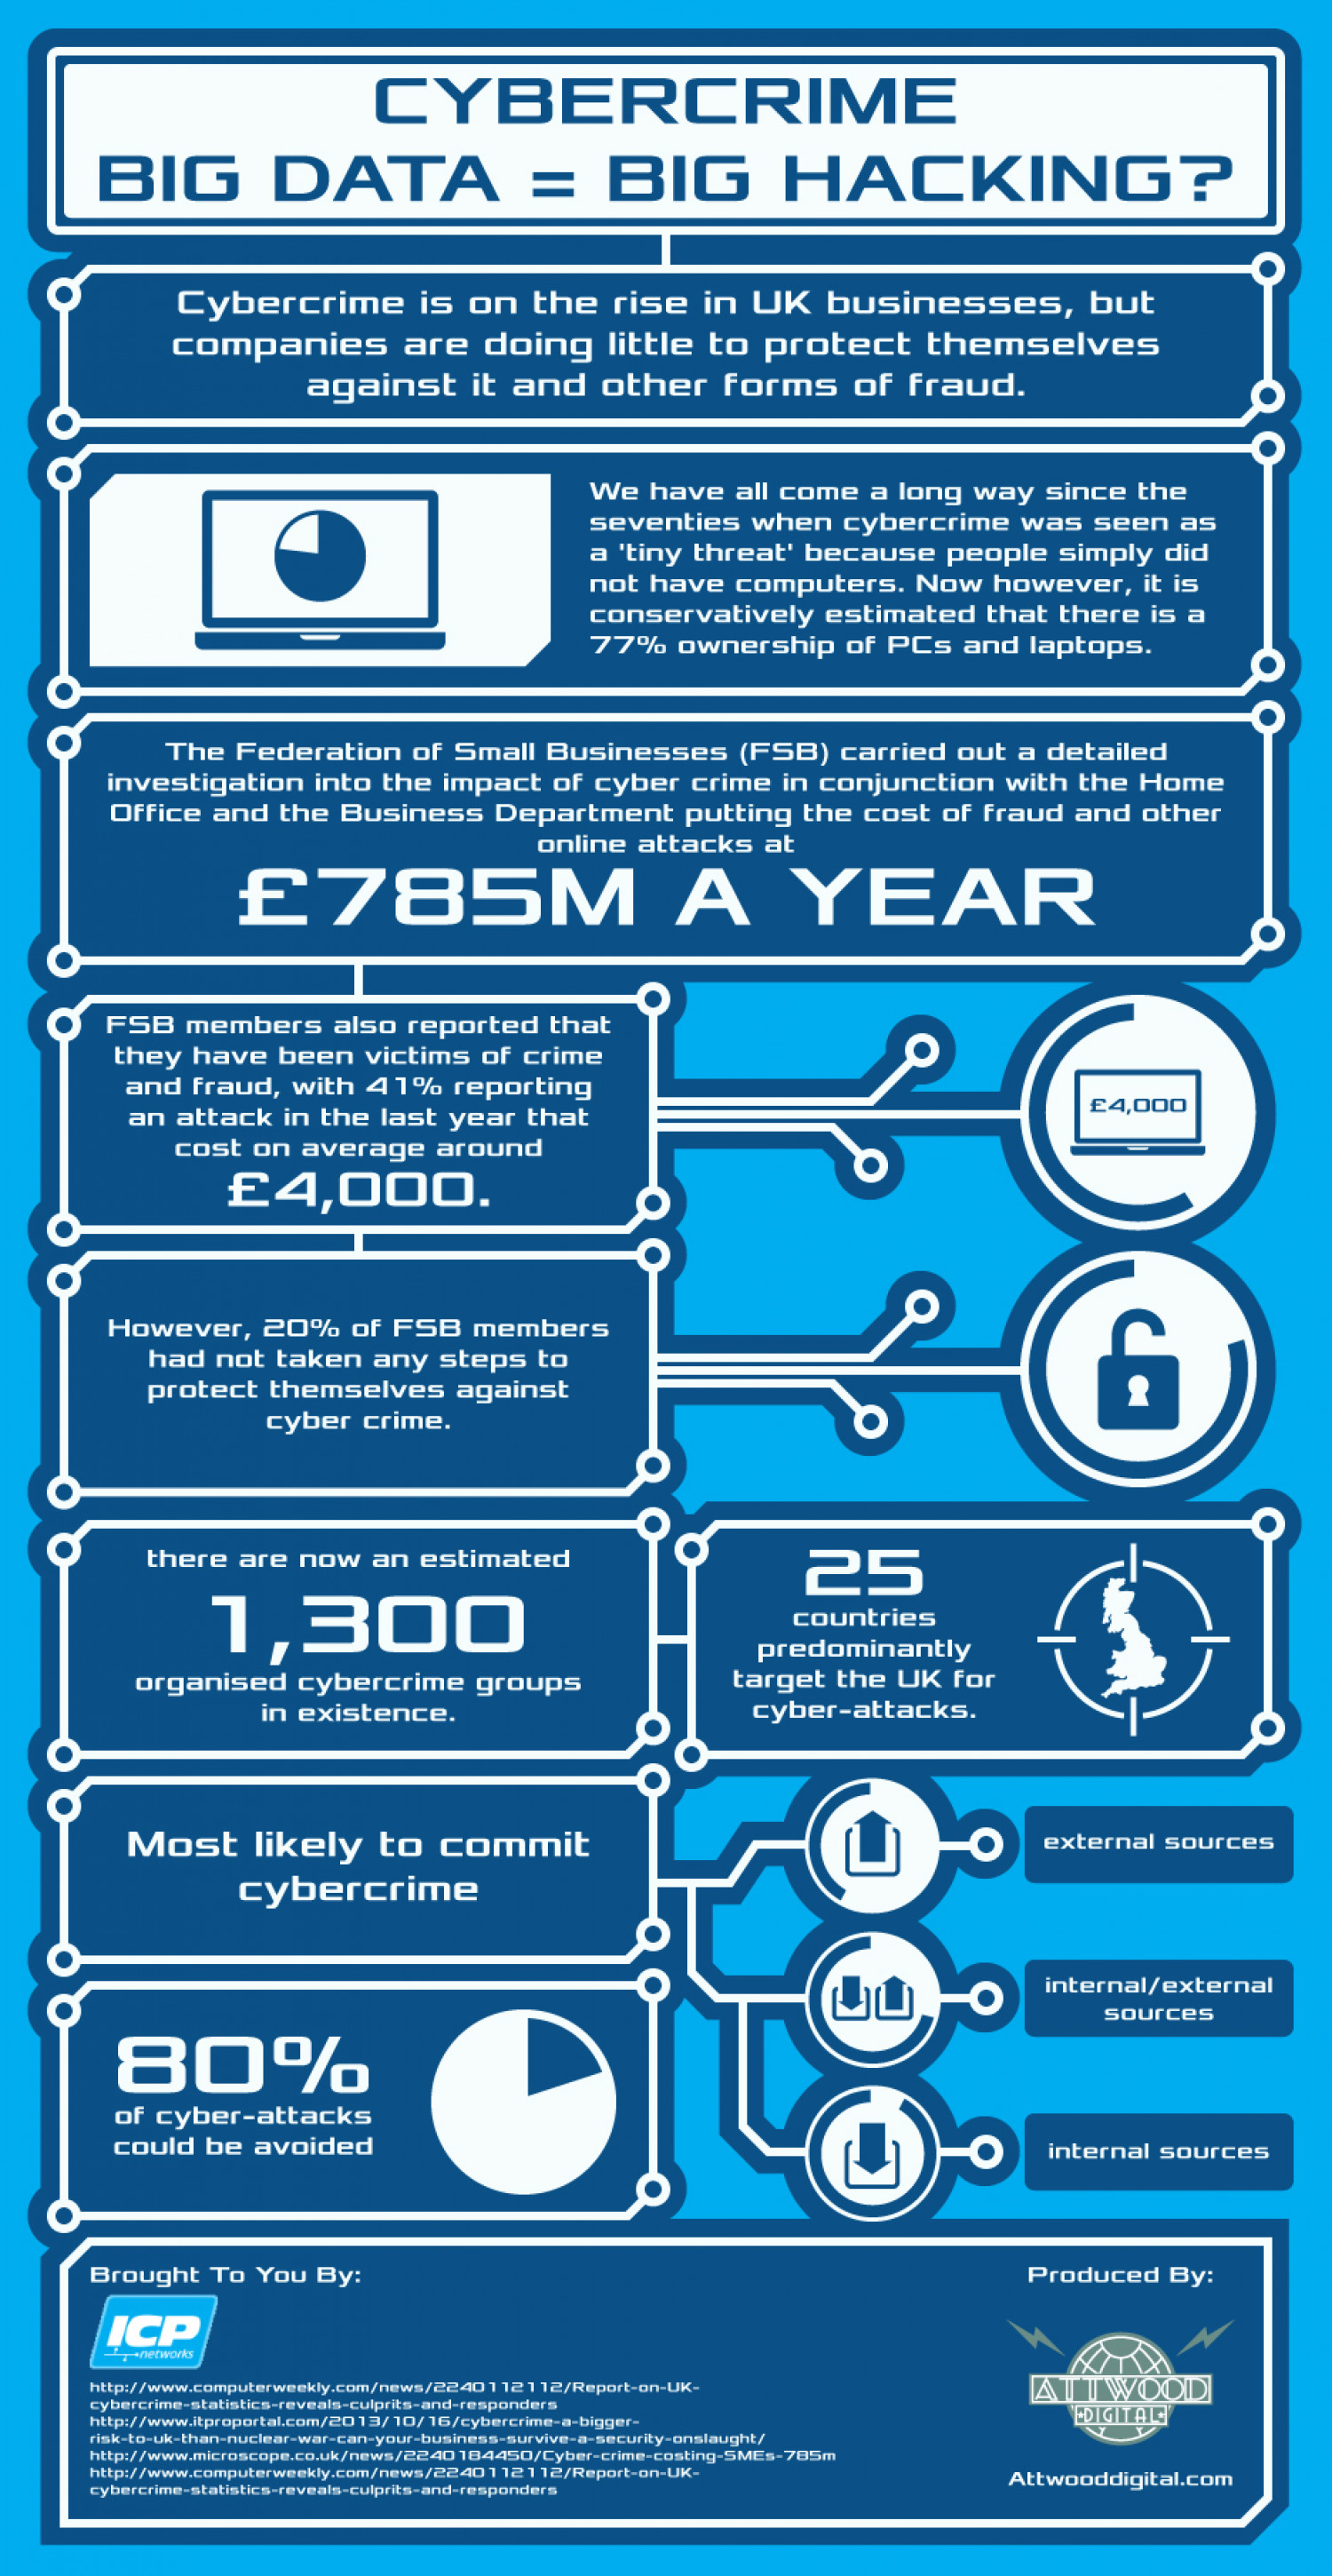 Cybercrime: Big Data = Big Hacking? Infographic